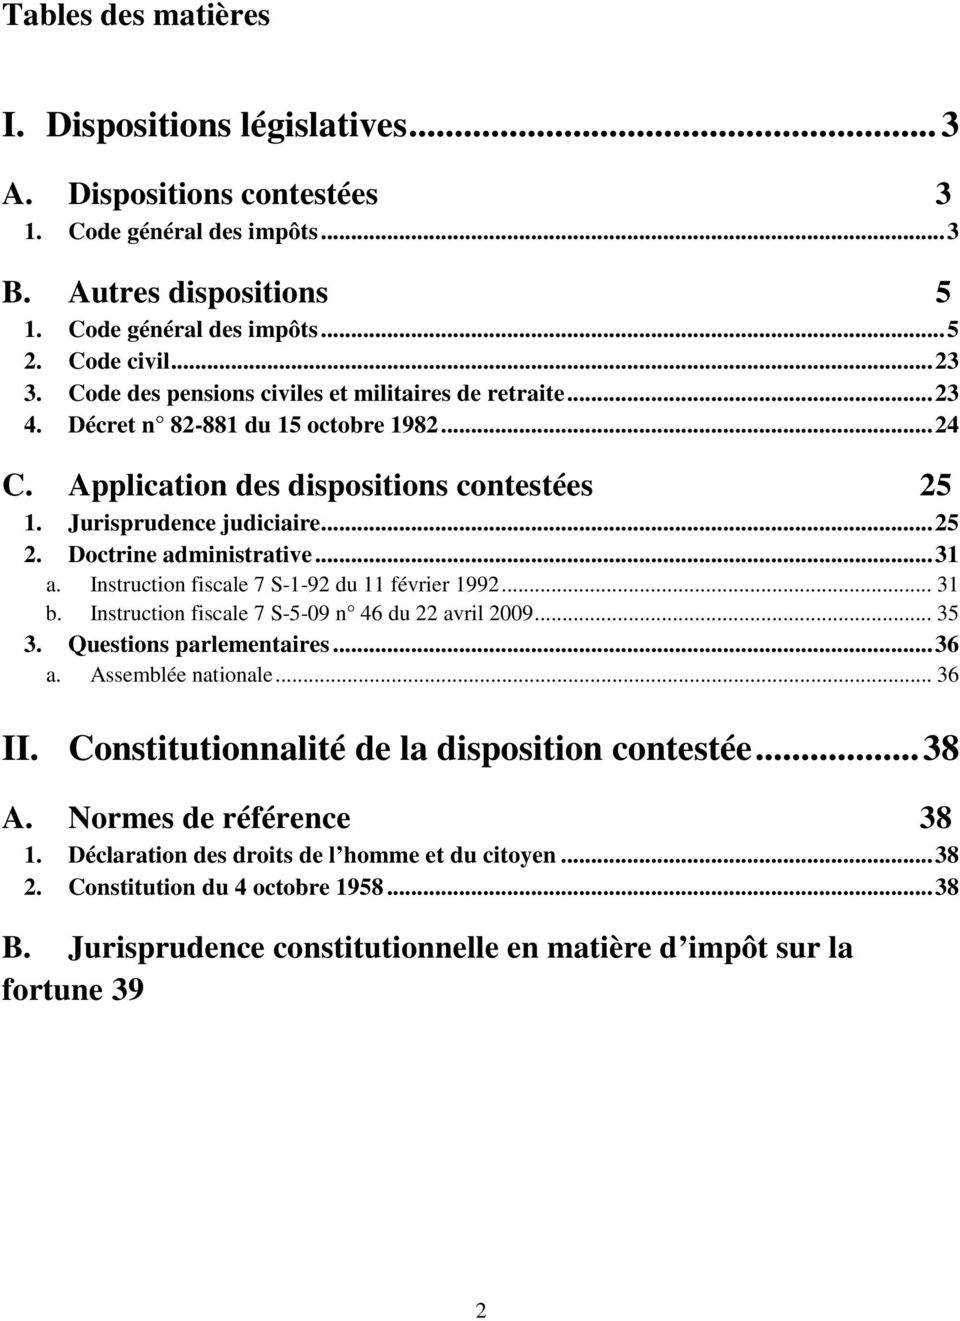 Doctrine administrative... 31 a. Instruction fiscale 7 S192 du 11 février 1992... 31 b. Instruction fiscale 7 S509 n 46 du 22 avril 2009... 35 3. Questions parlementaires... 36 a. Assemblée nationale.